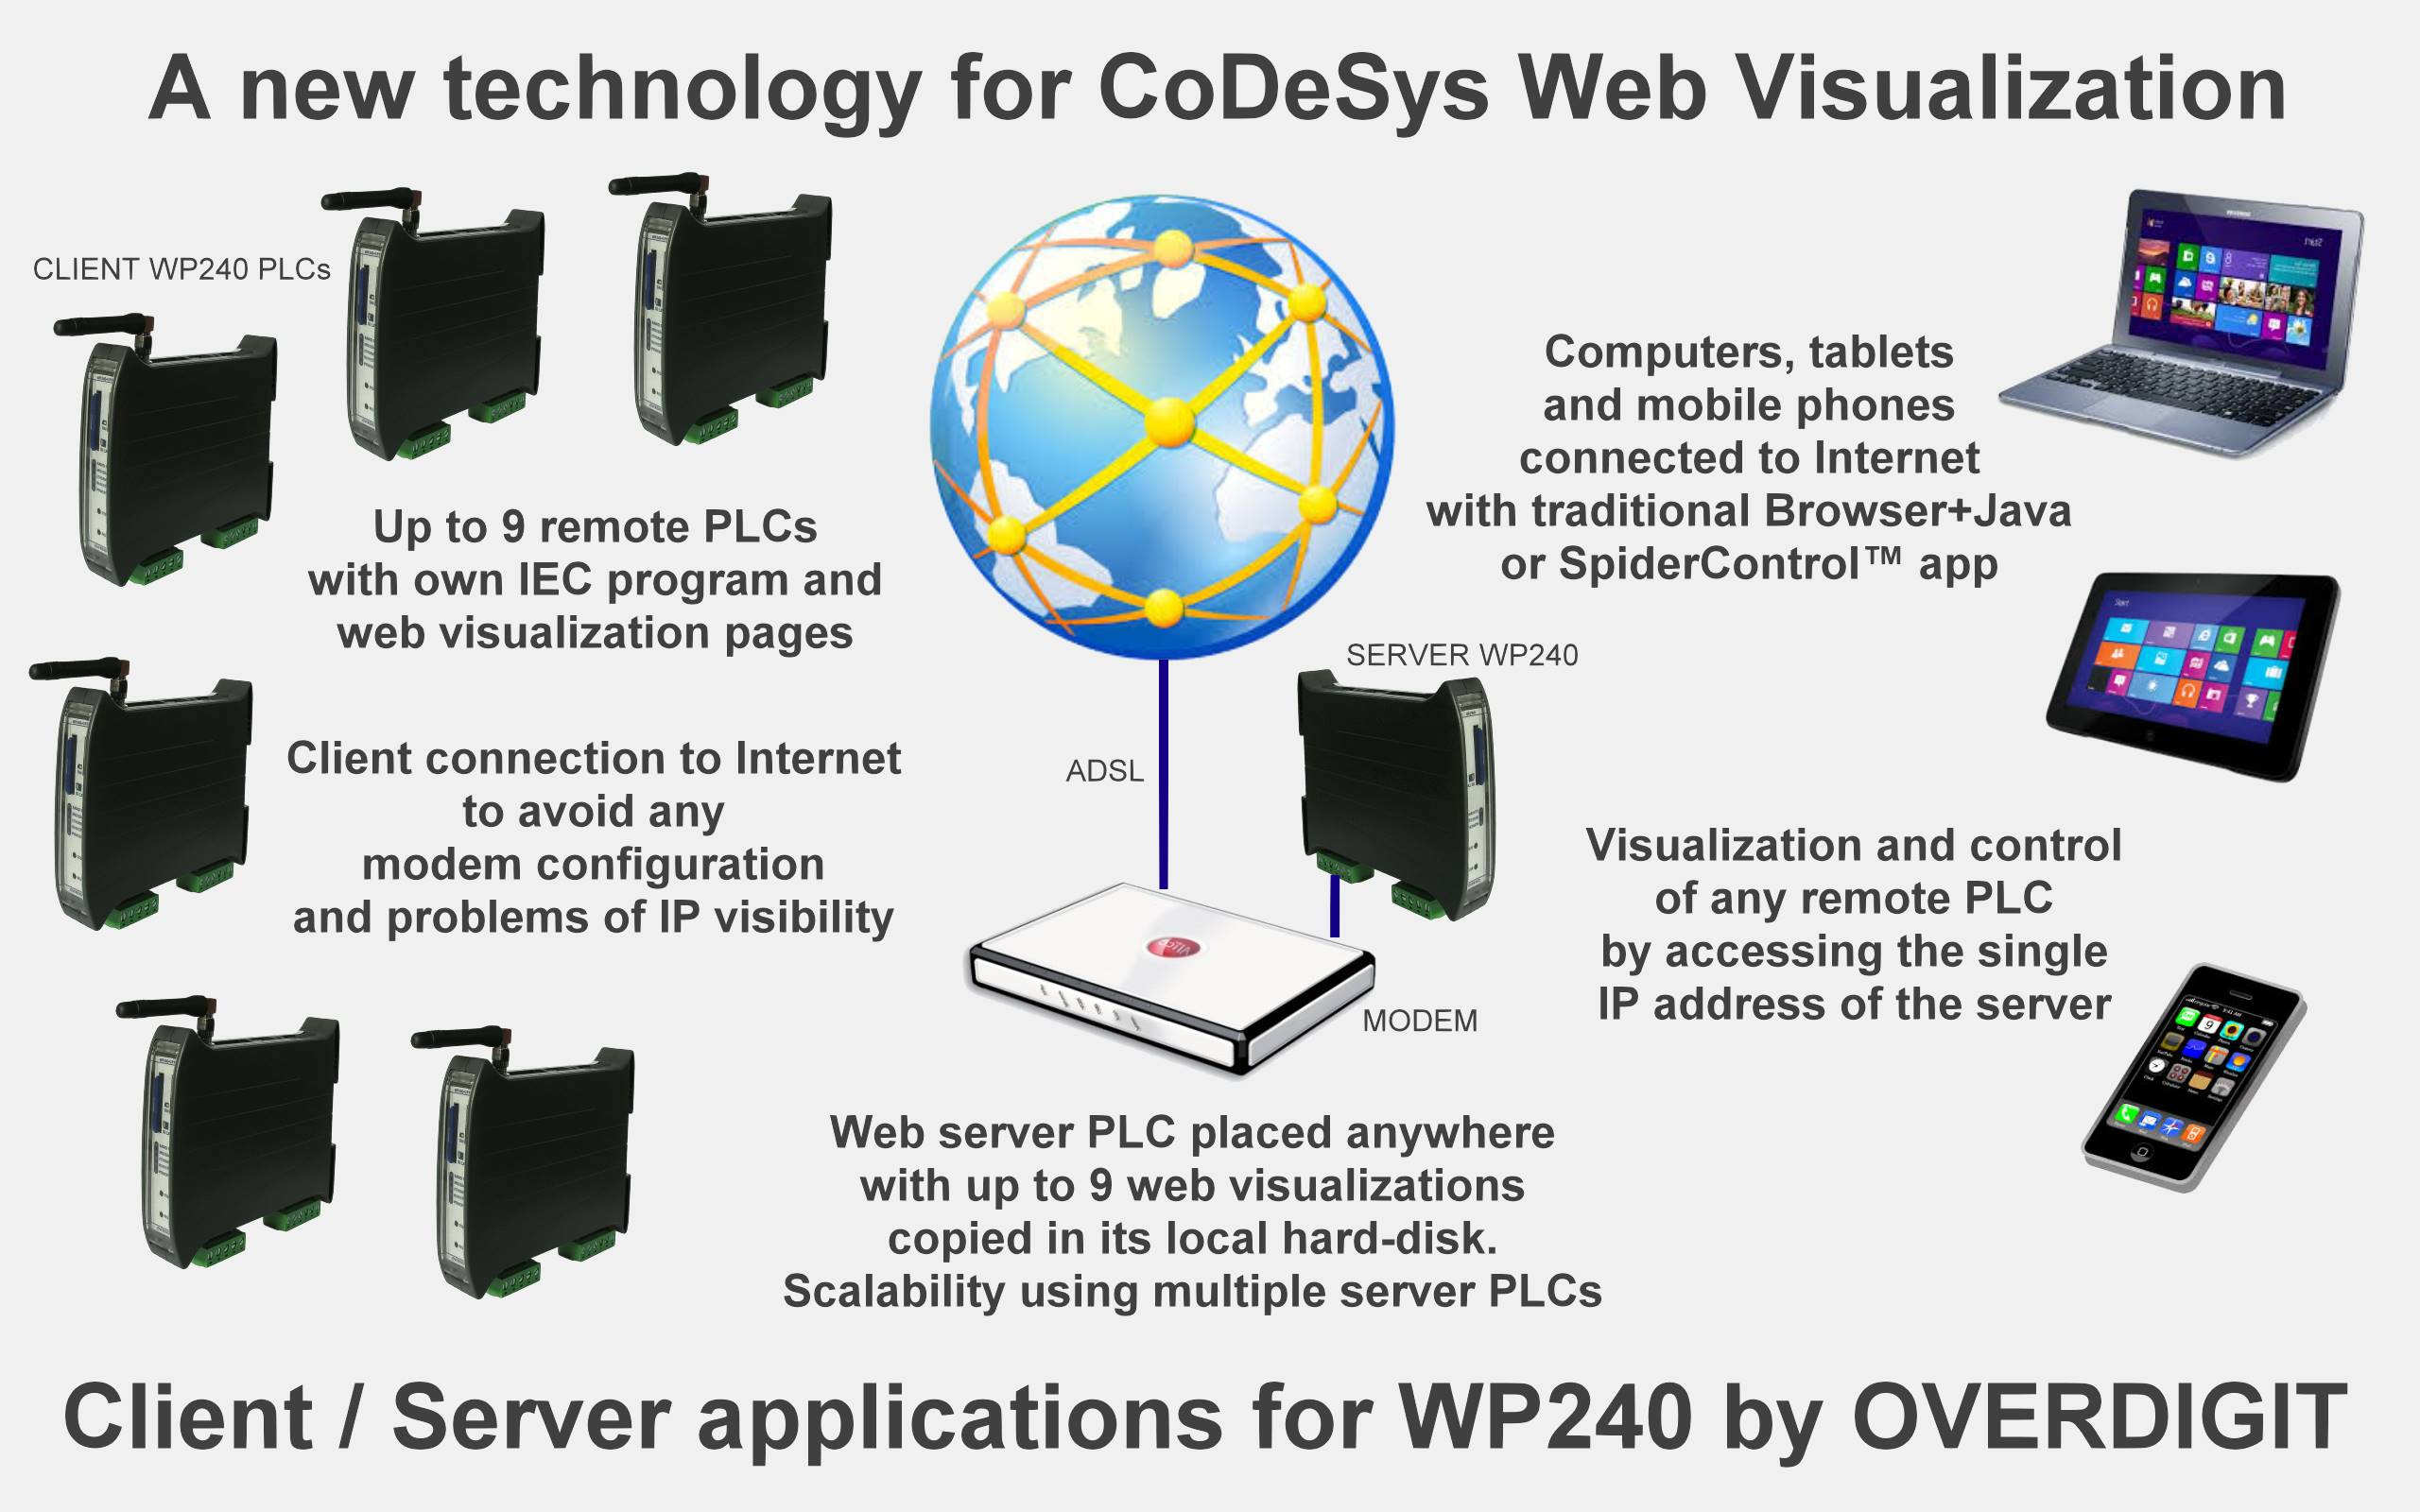 codesys web visualization